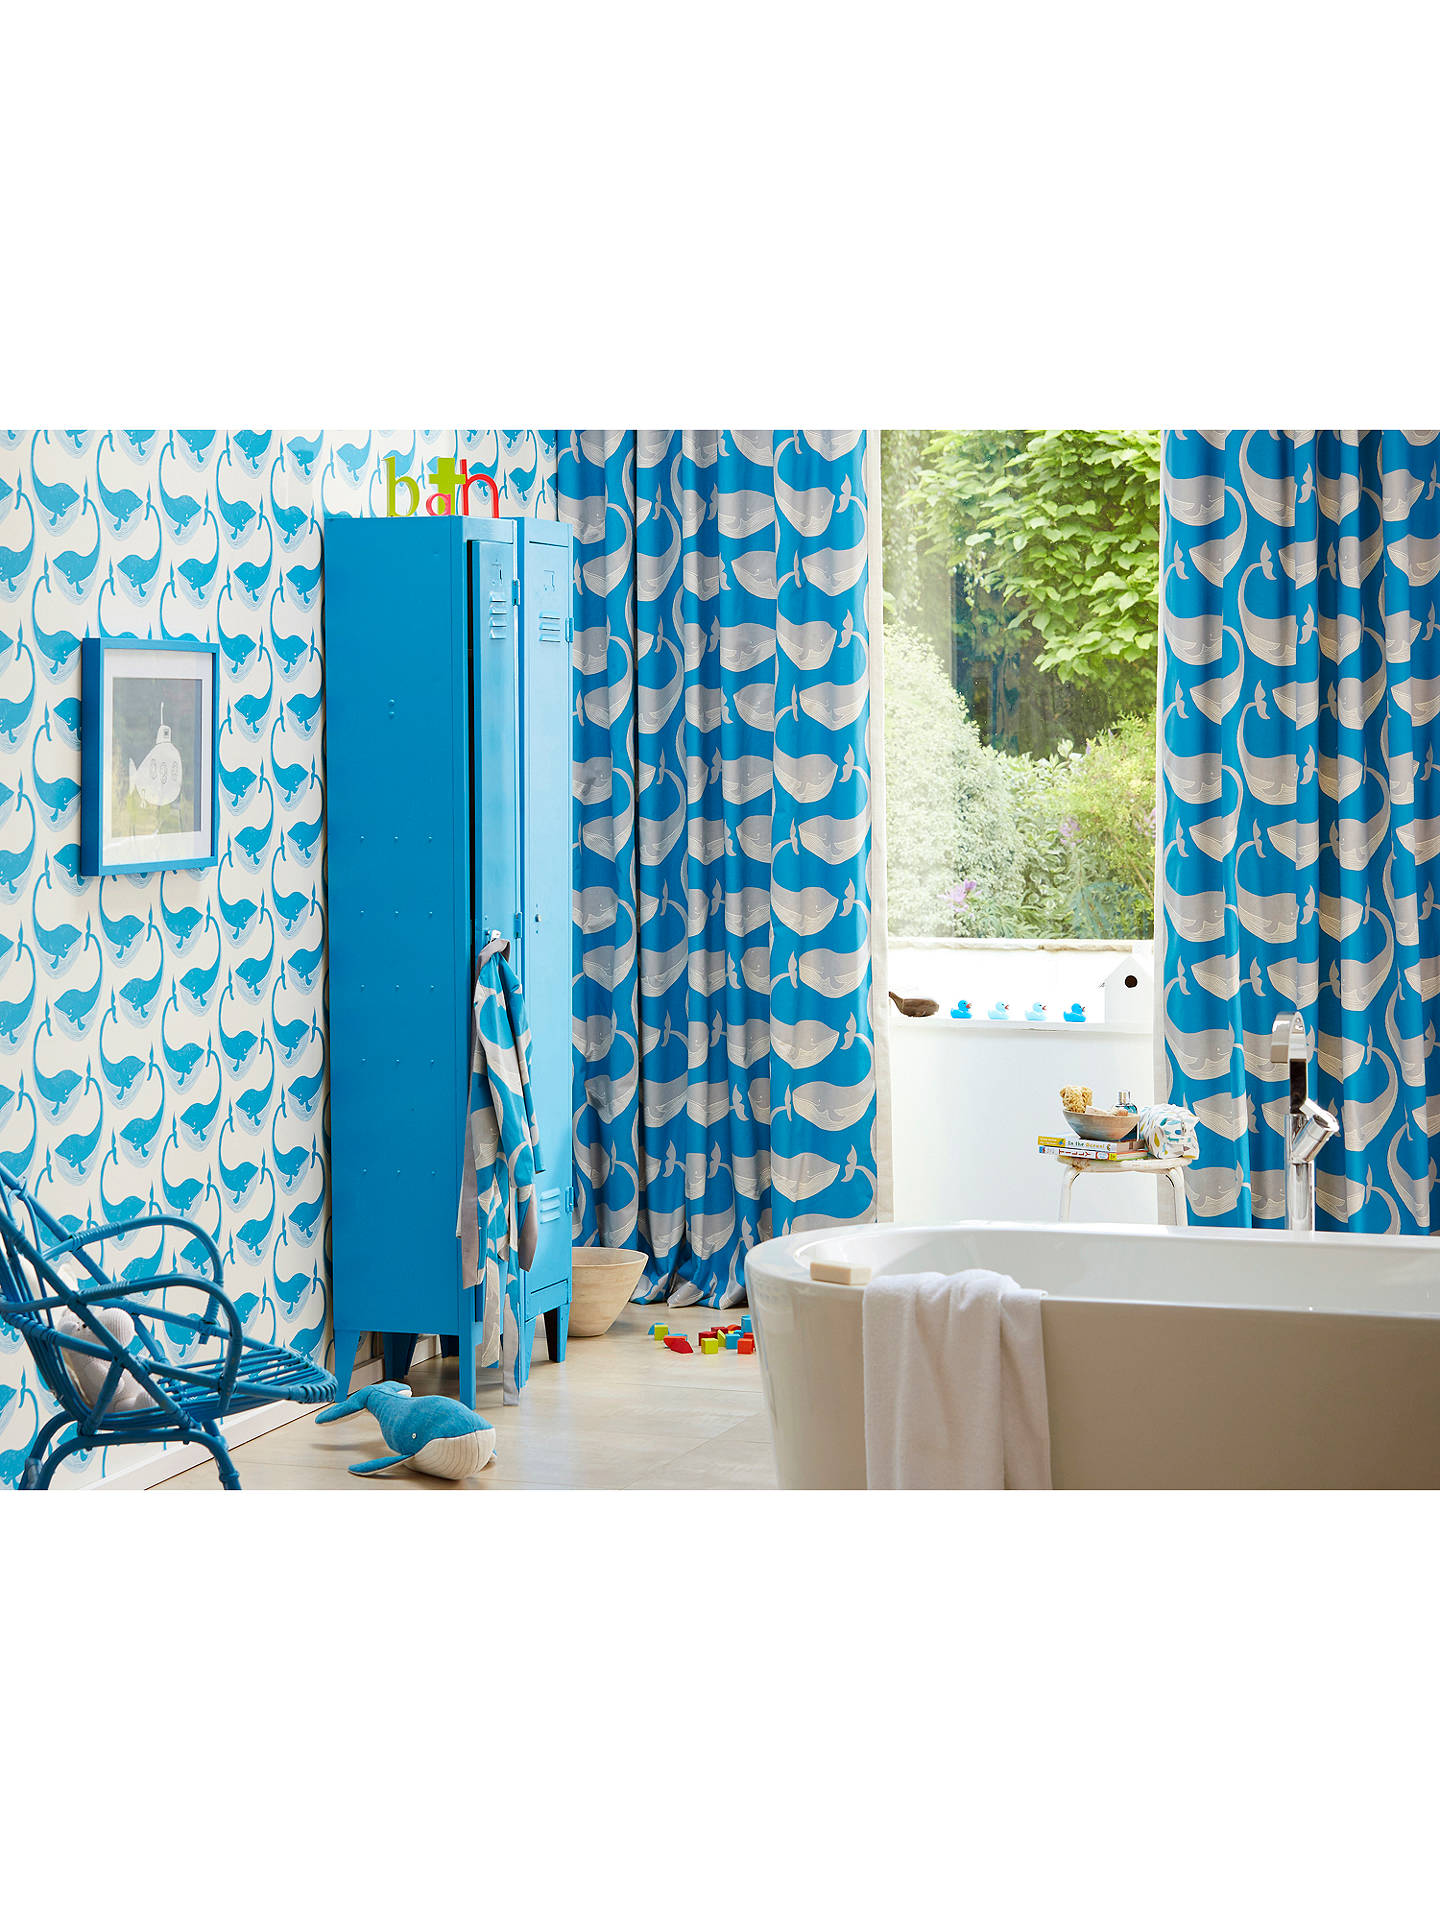 BuyScion Whale of a Time Wallpaper, 111273 Online at johnlewis.com